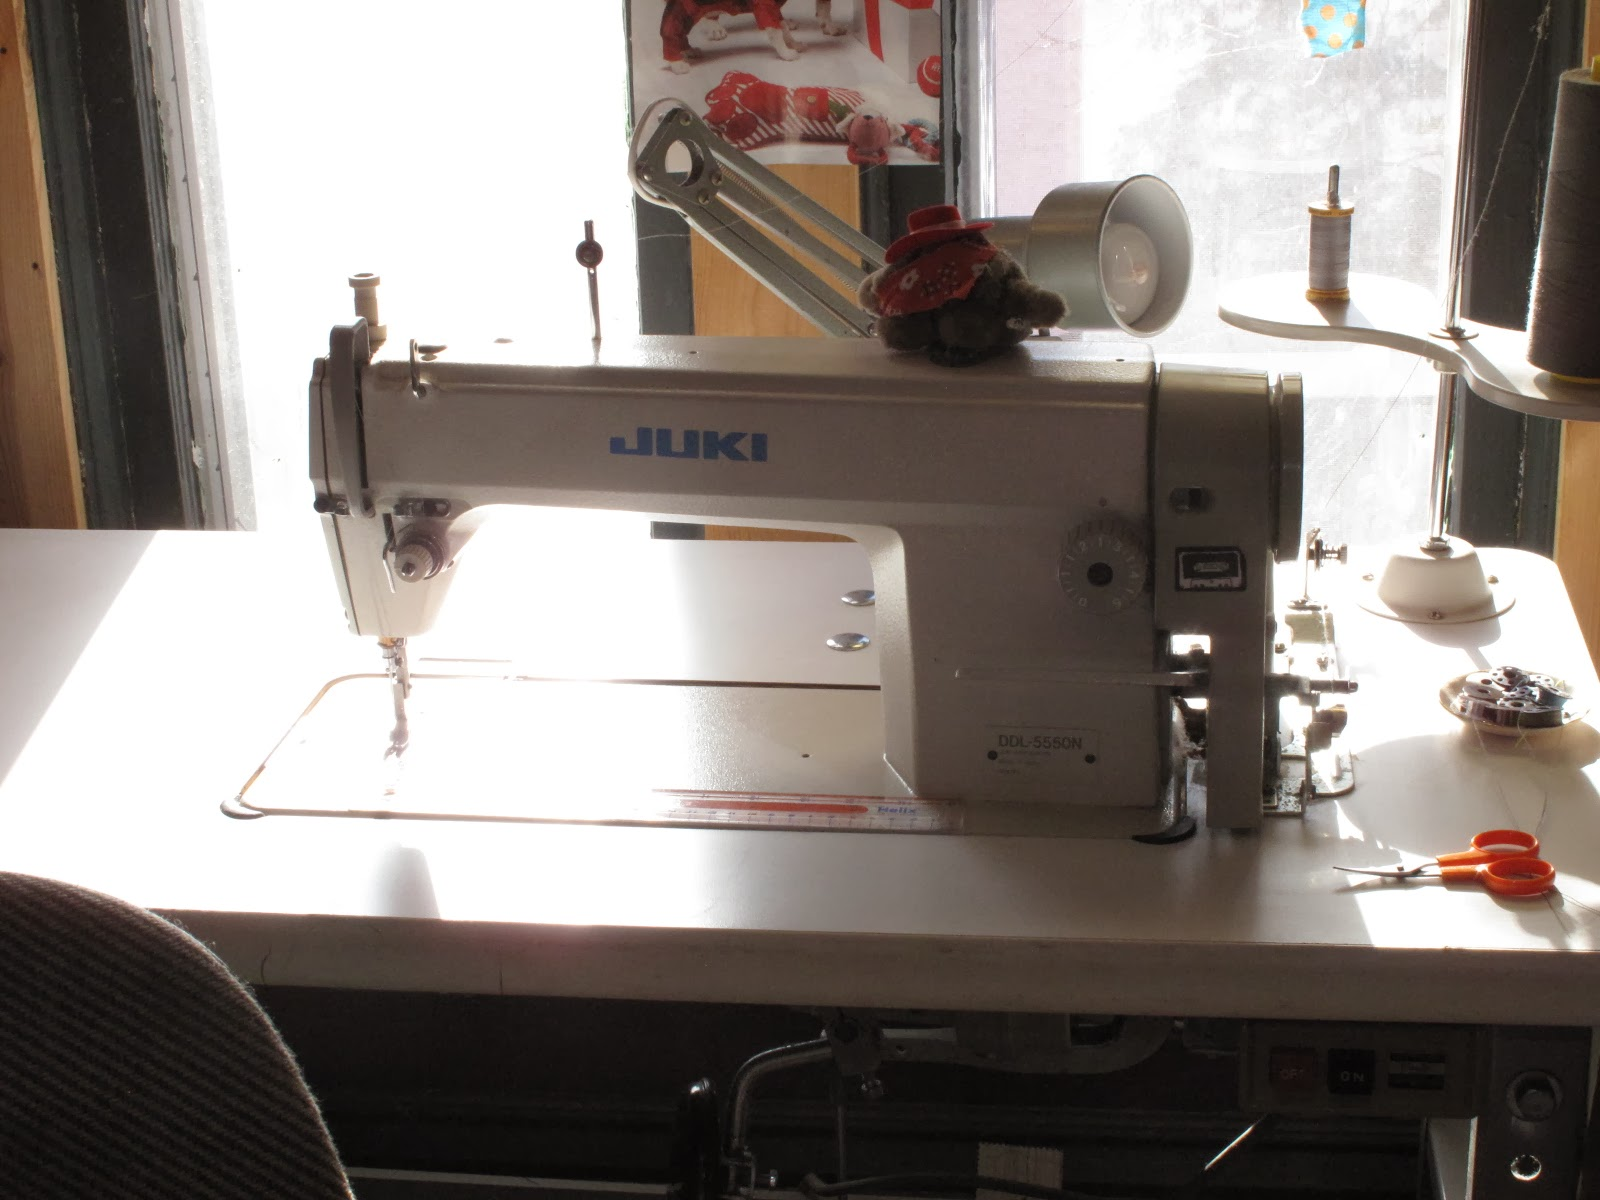 Discussion Review Of My Industrial Sewing Machine And My